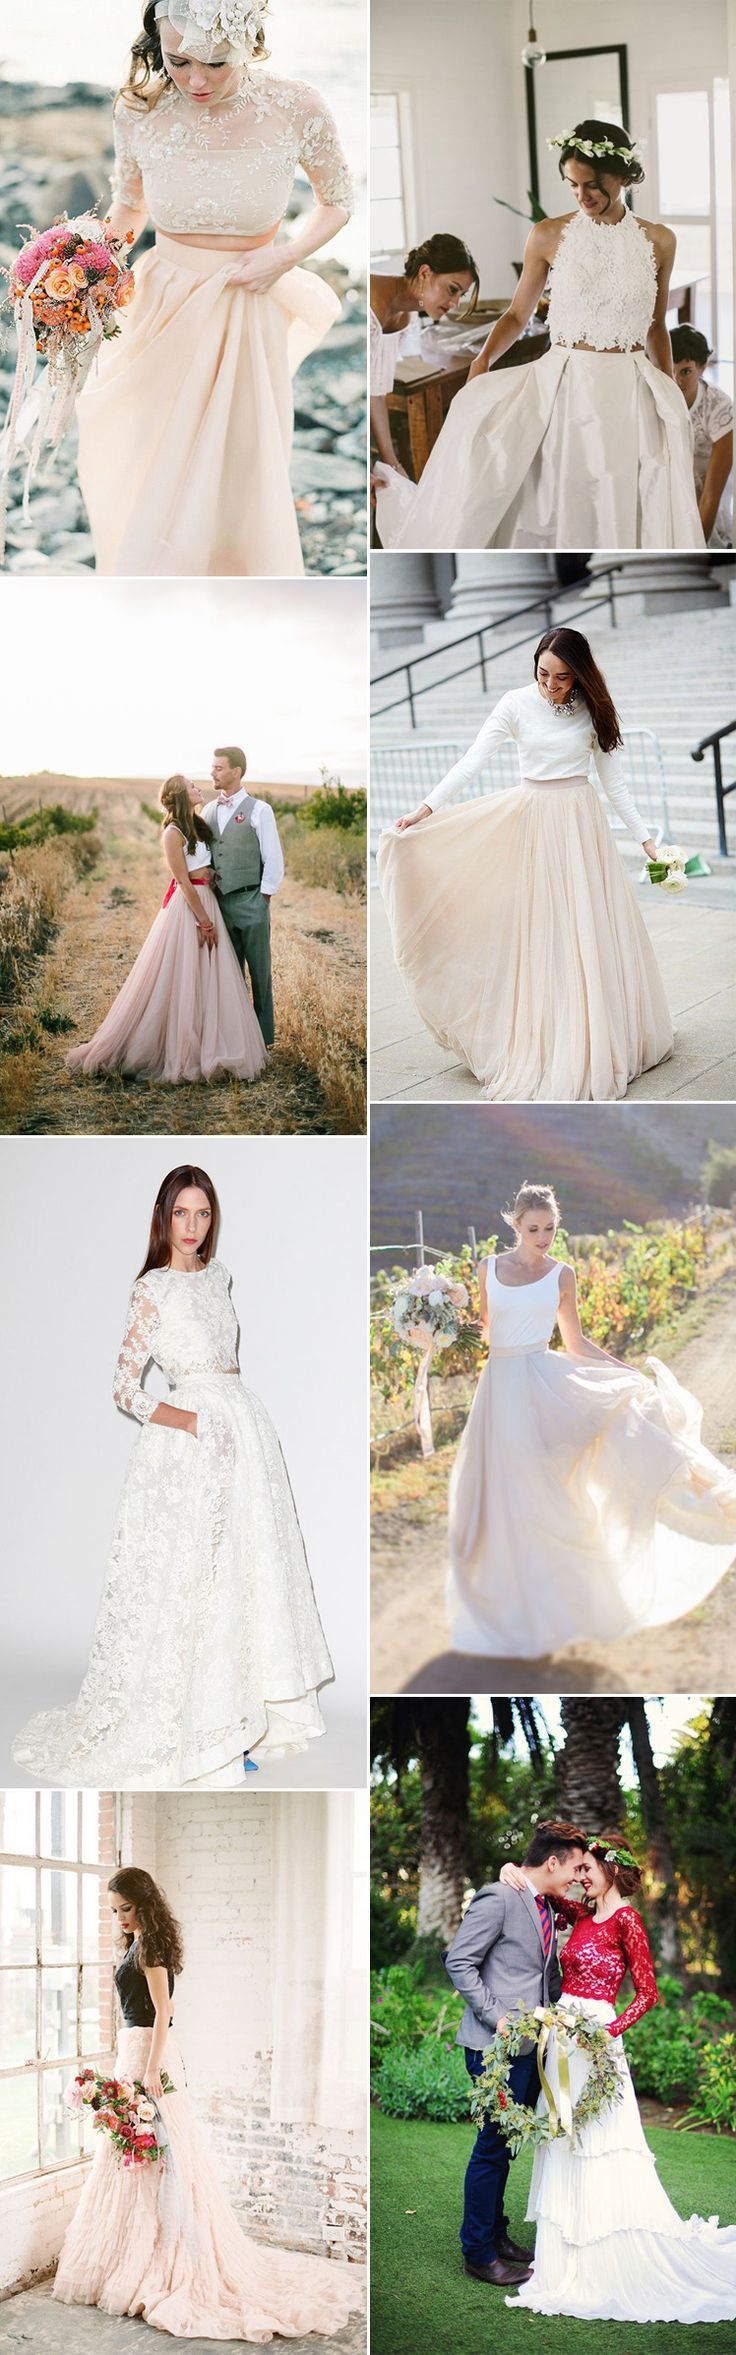 Move over wedding dresses, beautiful two pieces have flooded the catwalks recently. We take a look at top and skirt coords brides-to-be will simply adore!